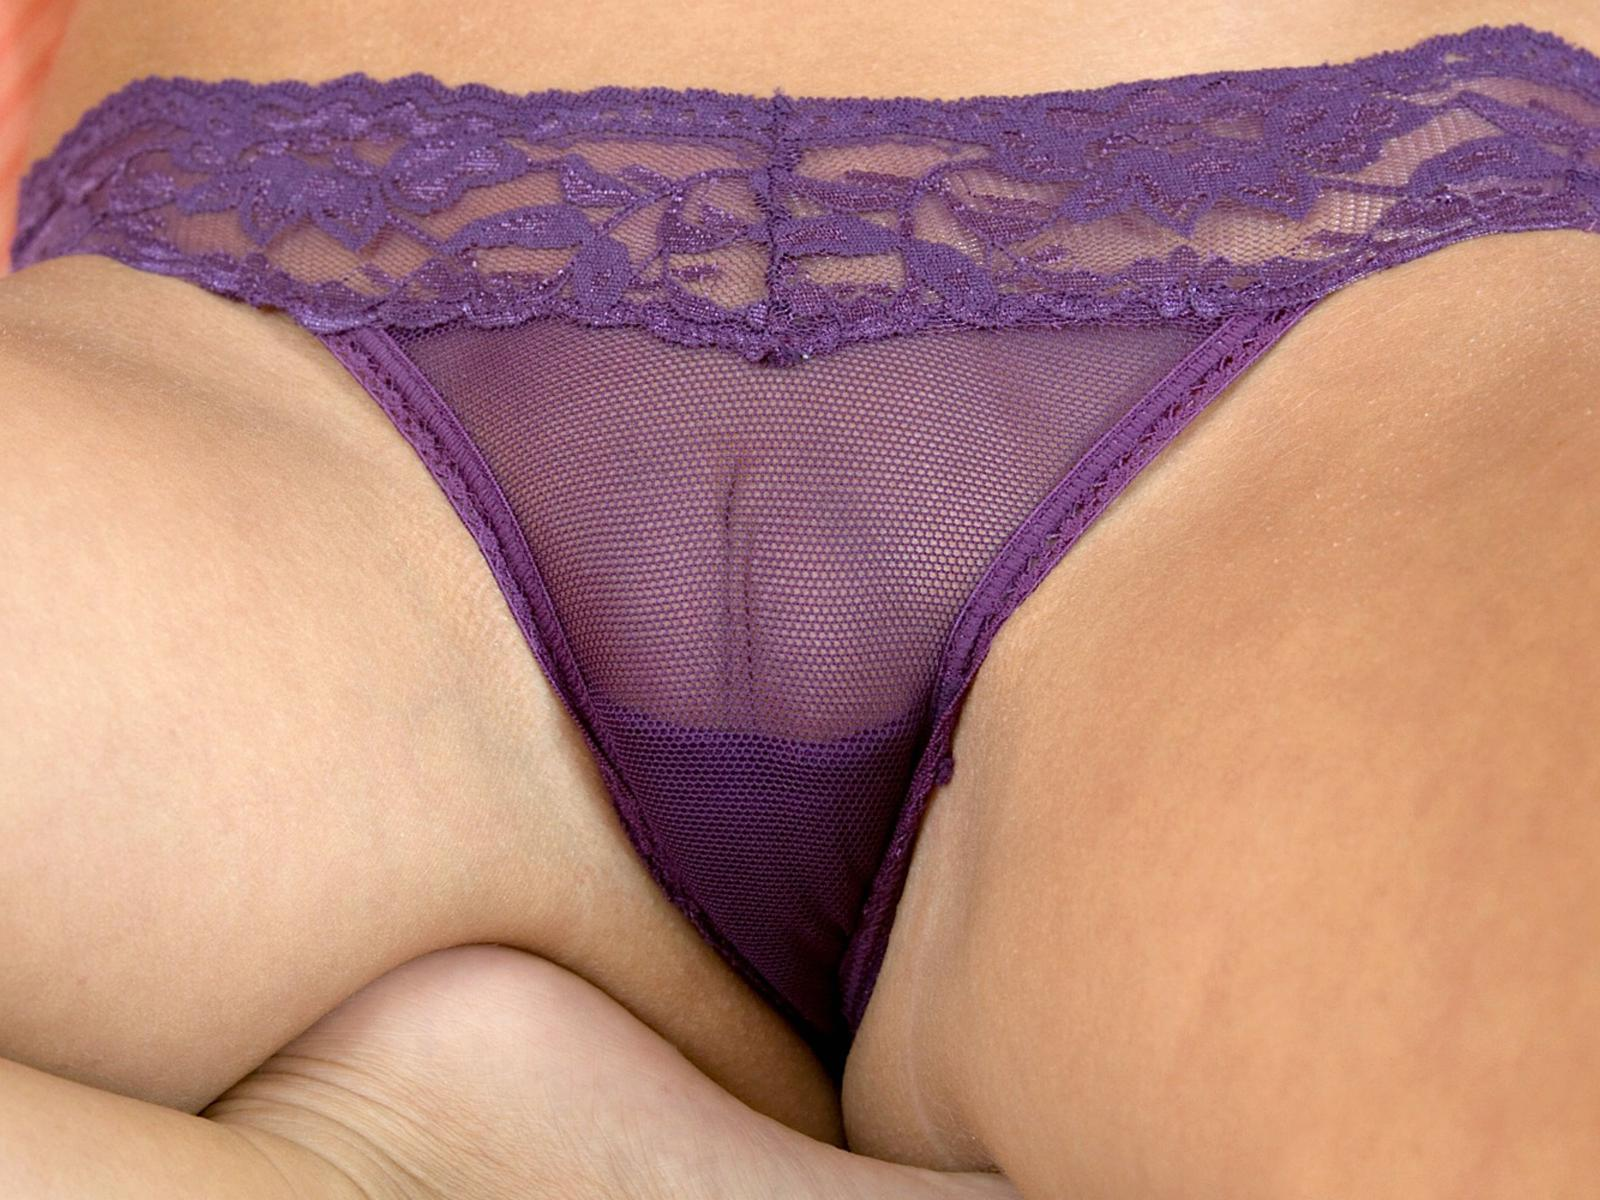 Apologise, but, see through panties skinny removed